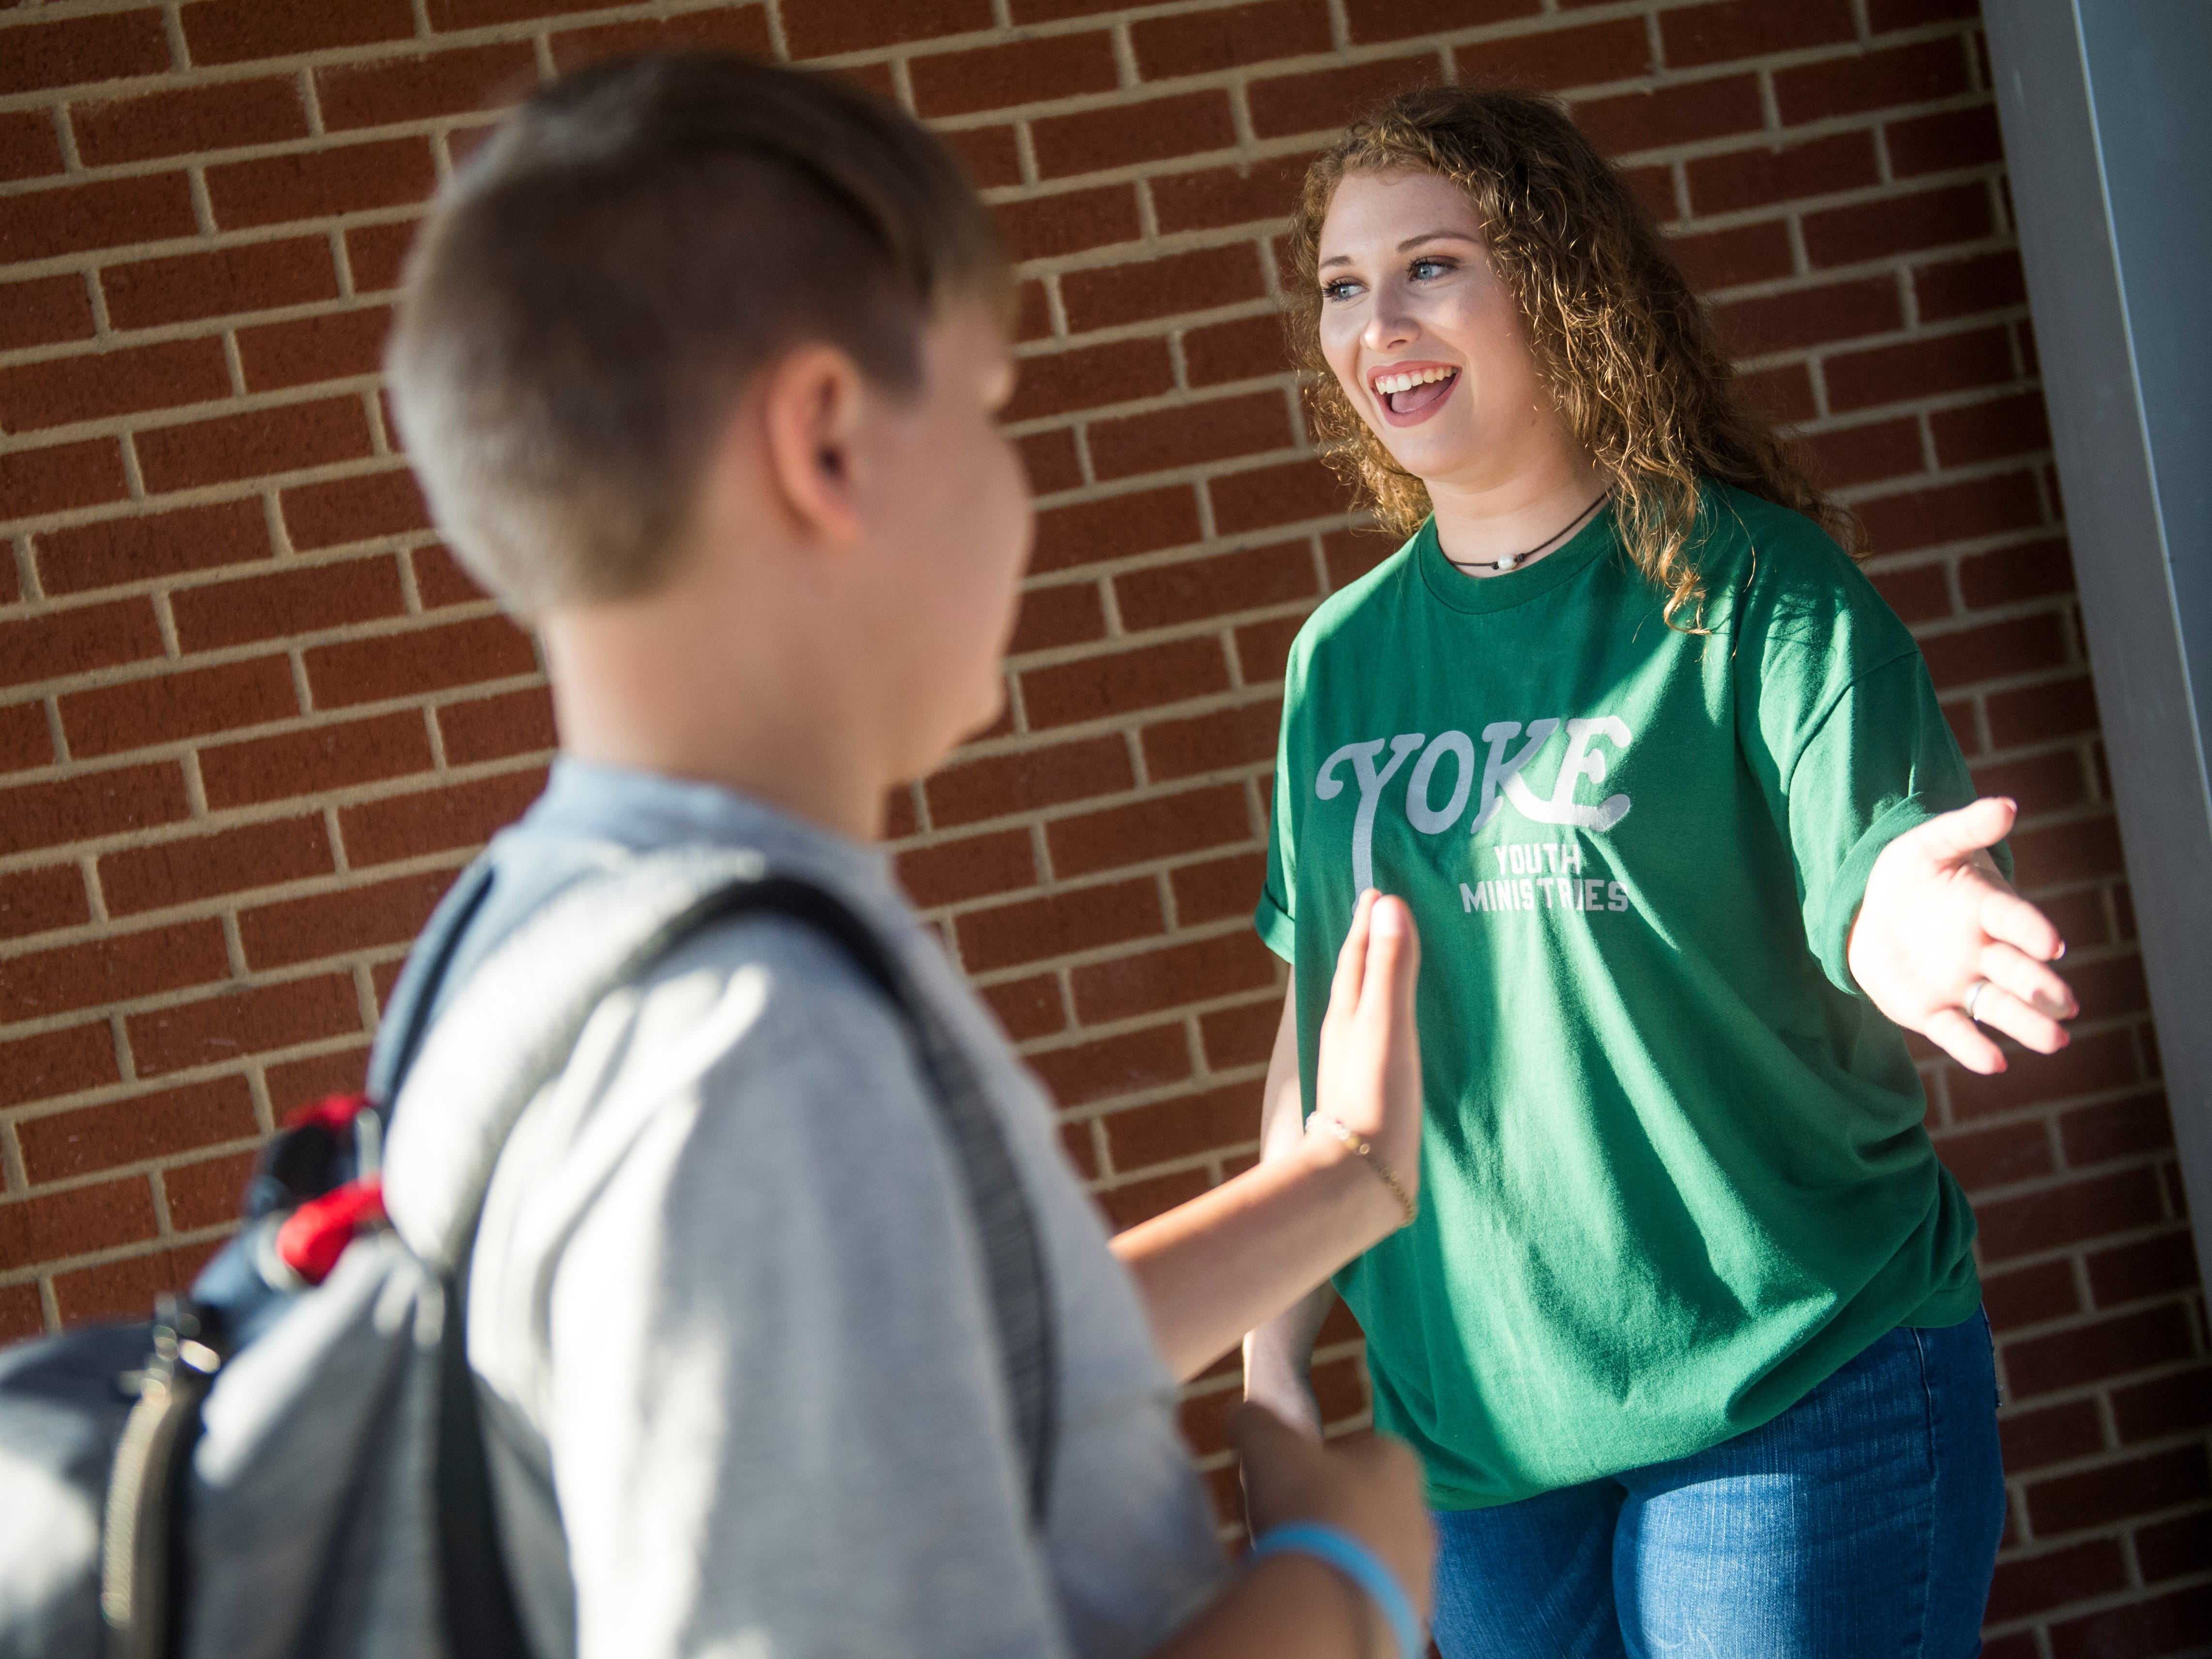 YOKE Youth Ministry's Sarah White, right, offers high fives to students as they enter the new Gibbs Middle School for the first day of school on Wednesday, August 8, 2018.